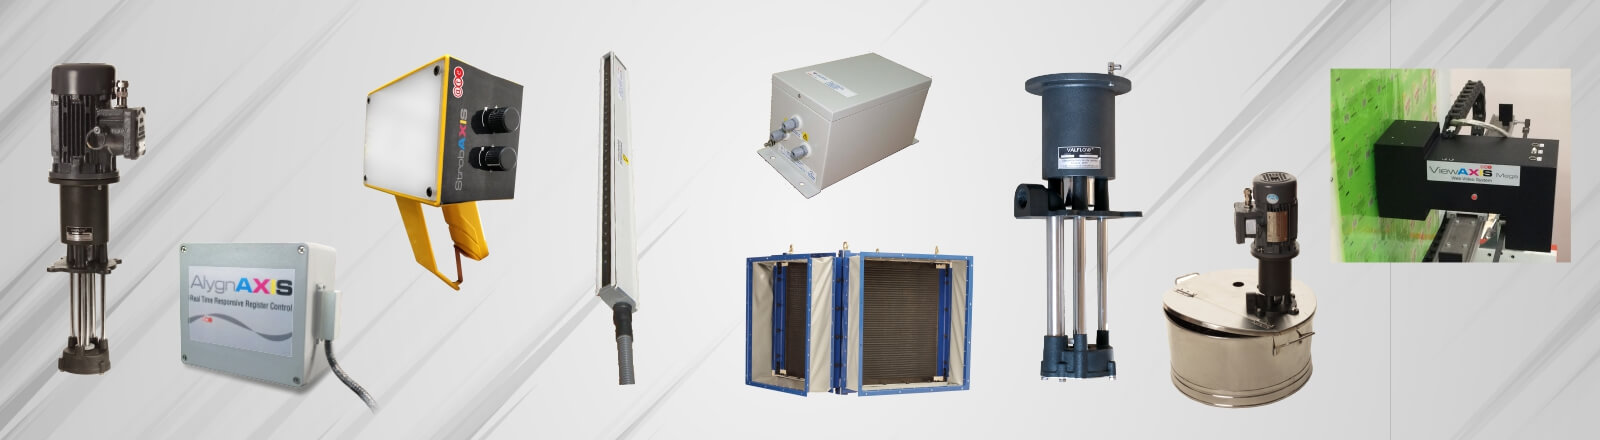 hmx-product-banner